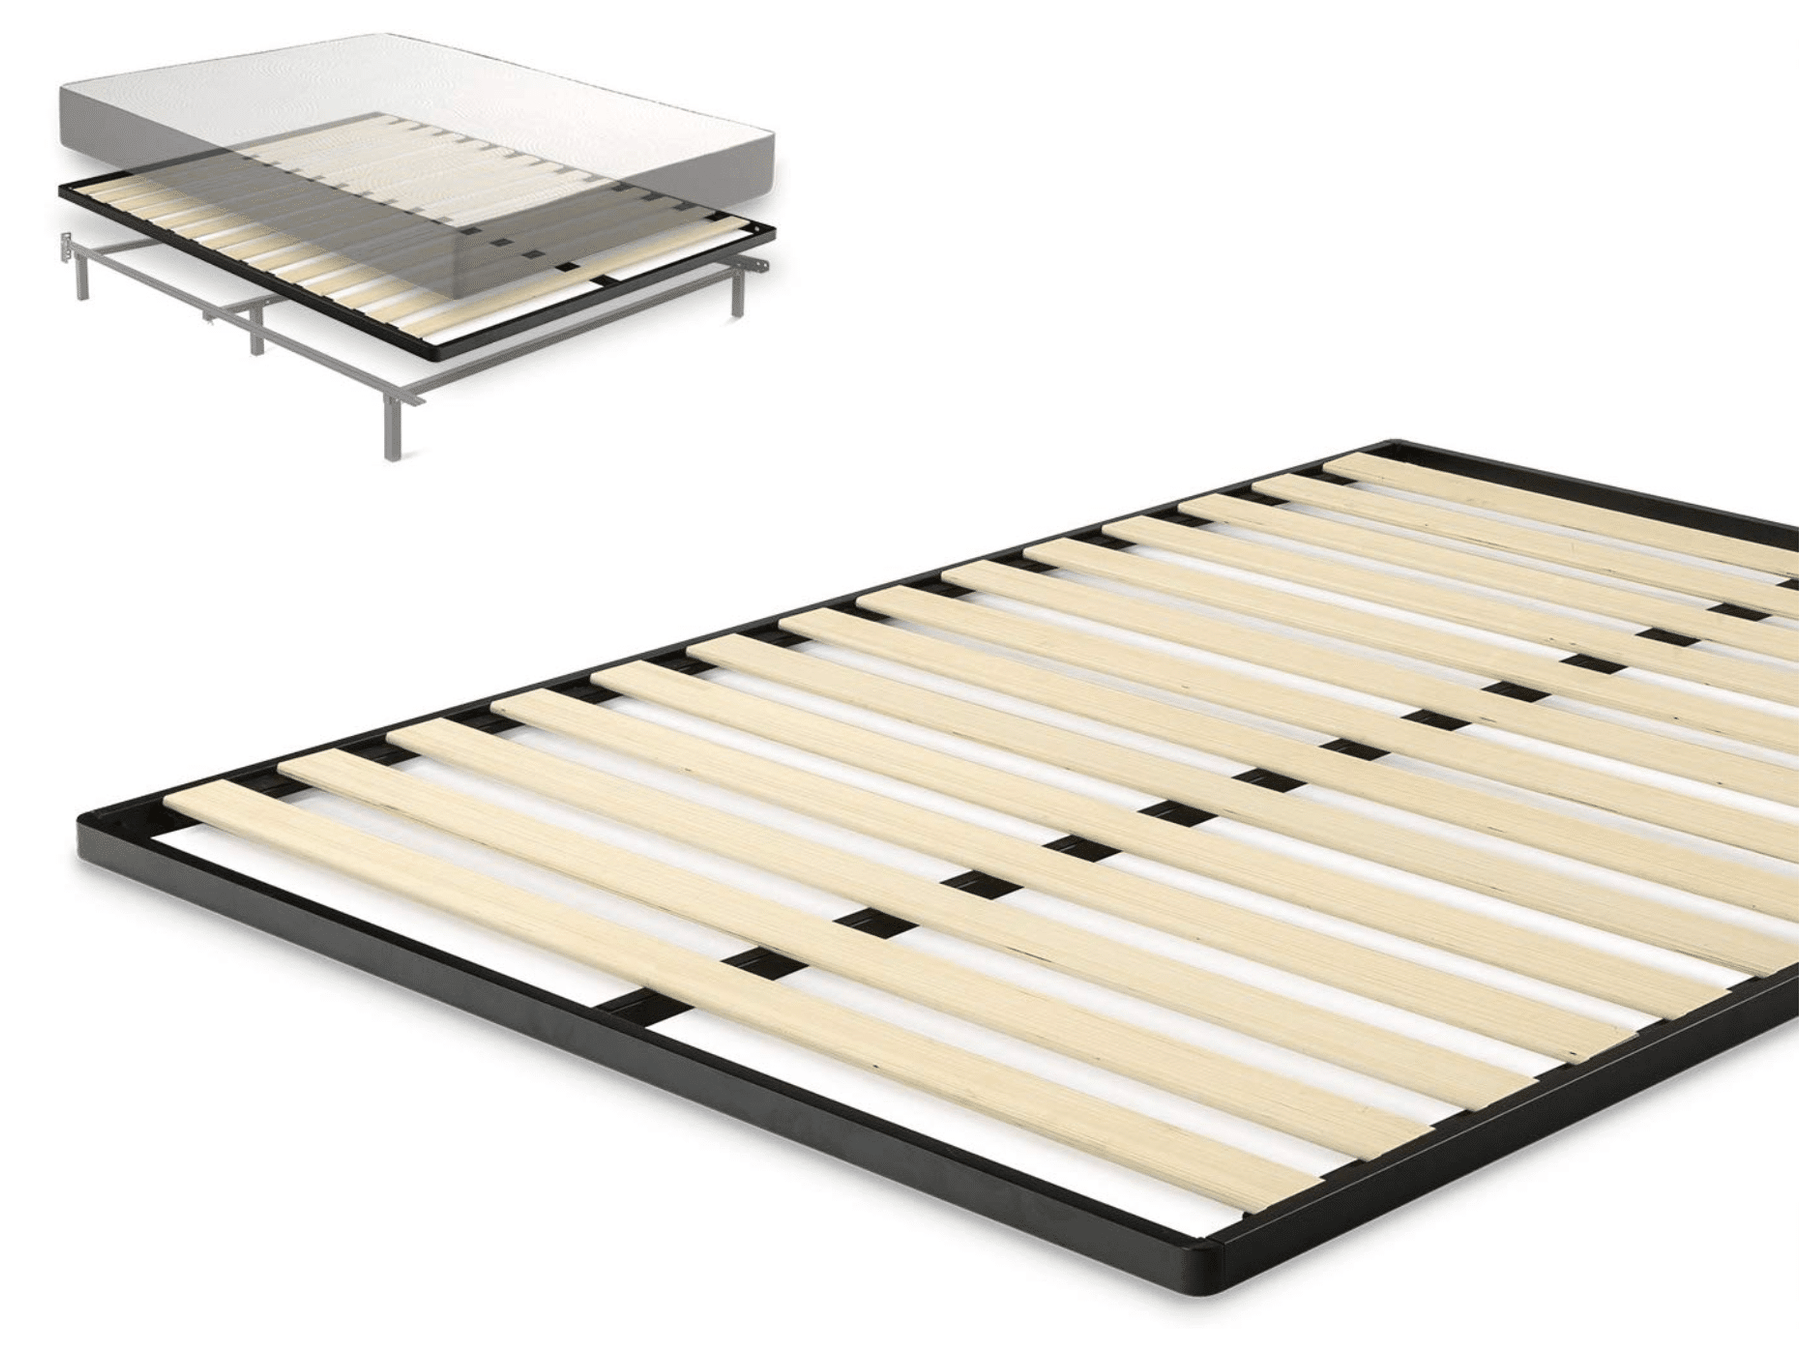 Bed Slats For A Double Bed